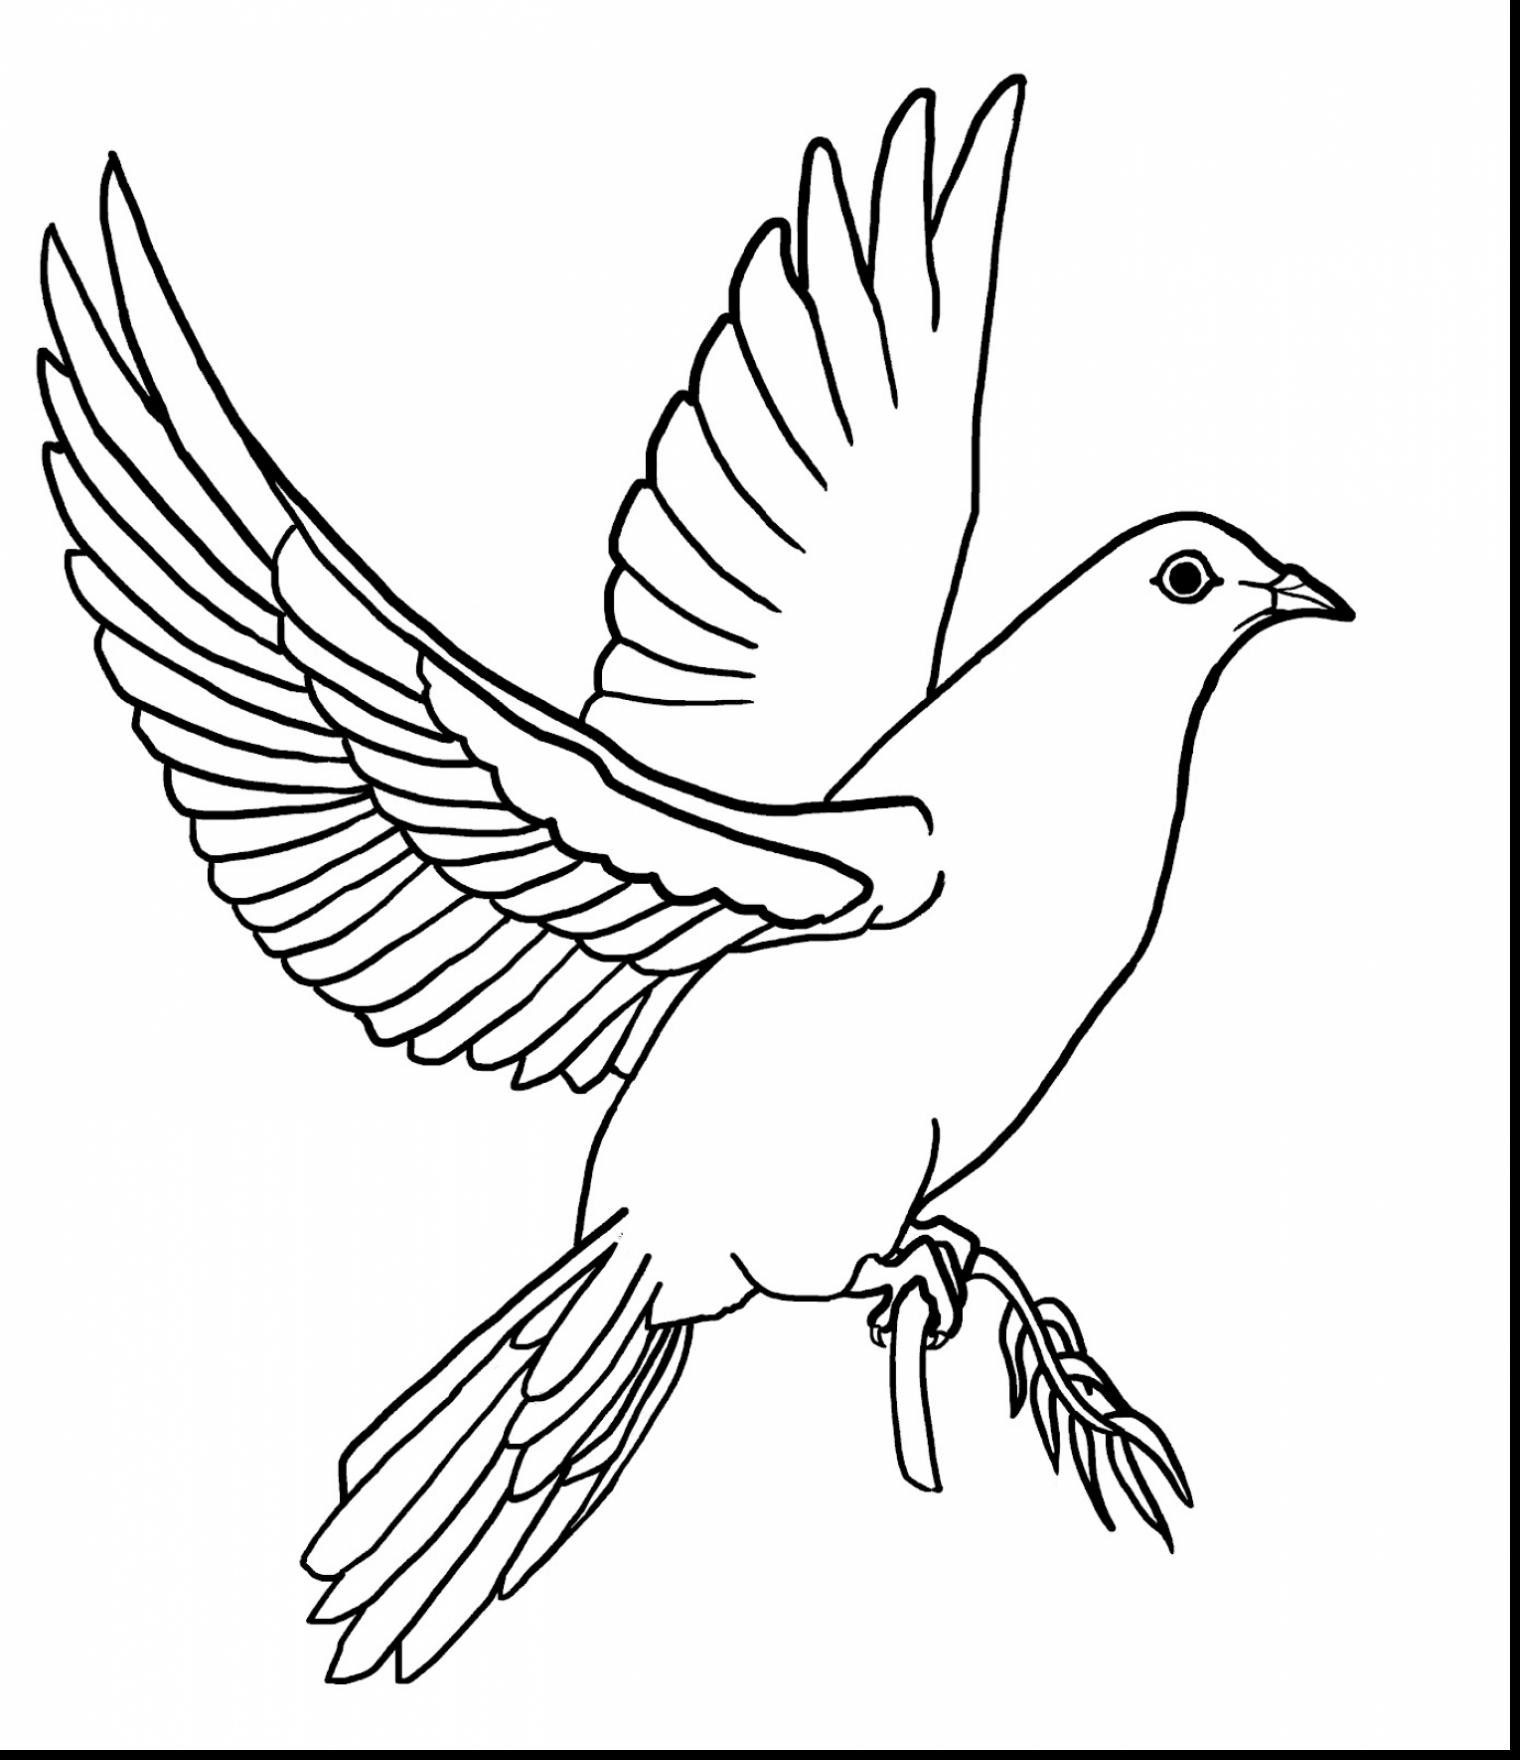 dove bird coloring pages collared dove coloring page free printable coloring pages pages bird dove coloring